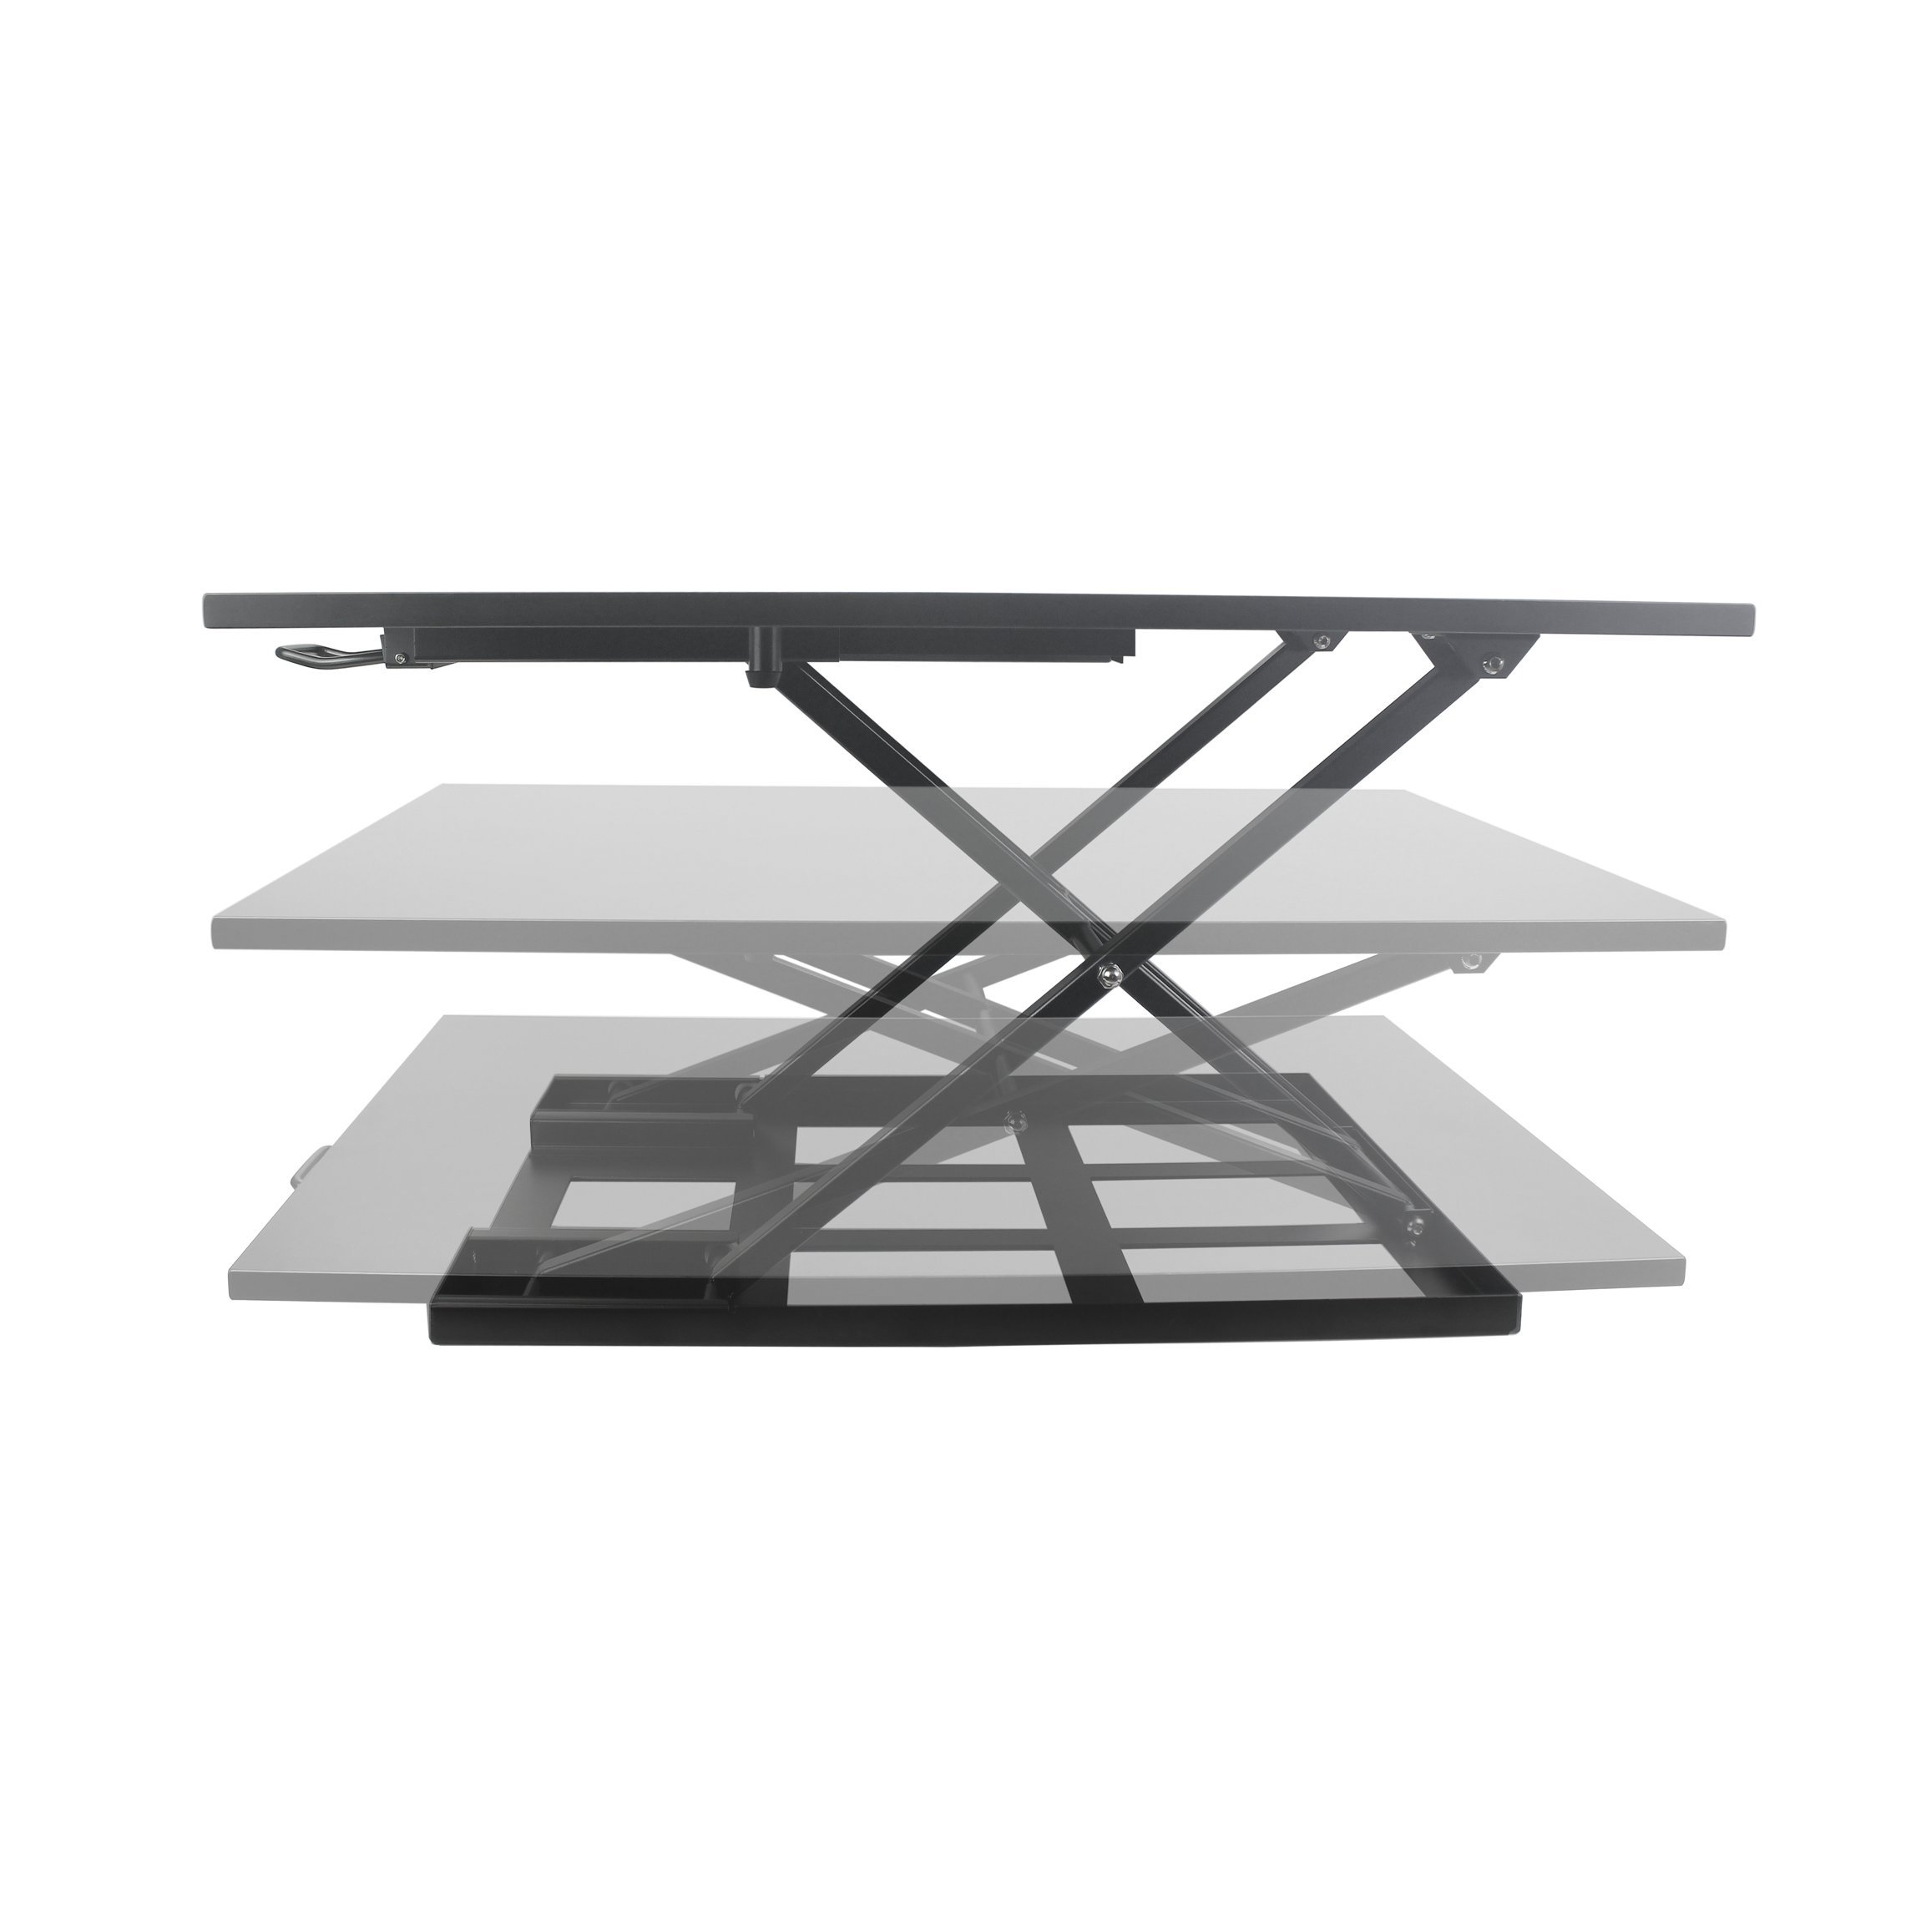 Best Standing Desk, Adjustable Height Riser Converter, Stand Up or Sit Down, 32'' Black Office Desktop, Computer Monitor & Laptop Workspace, Unlimited Ergonomic Positions for Better Health, Casiii UP32 by Casiii (Image #2)